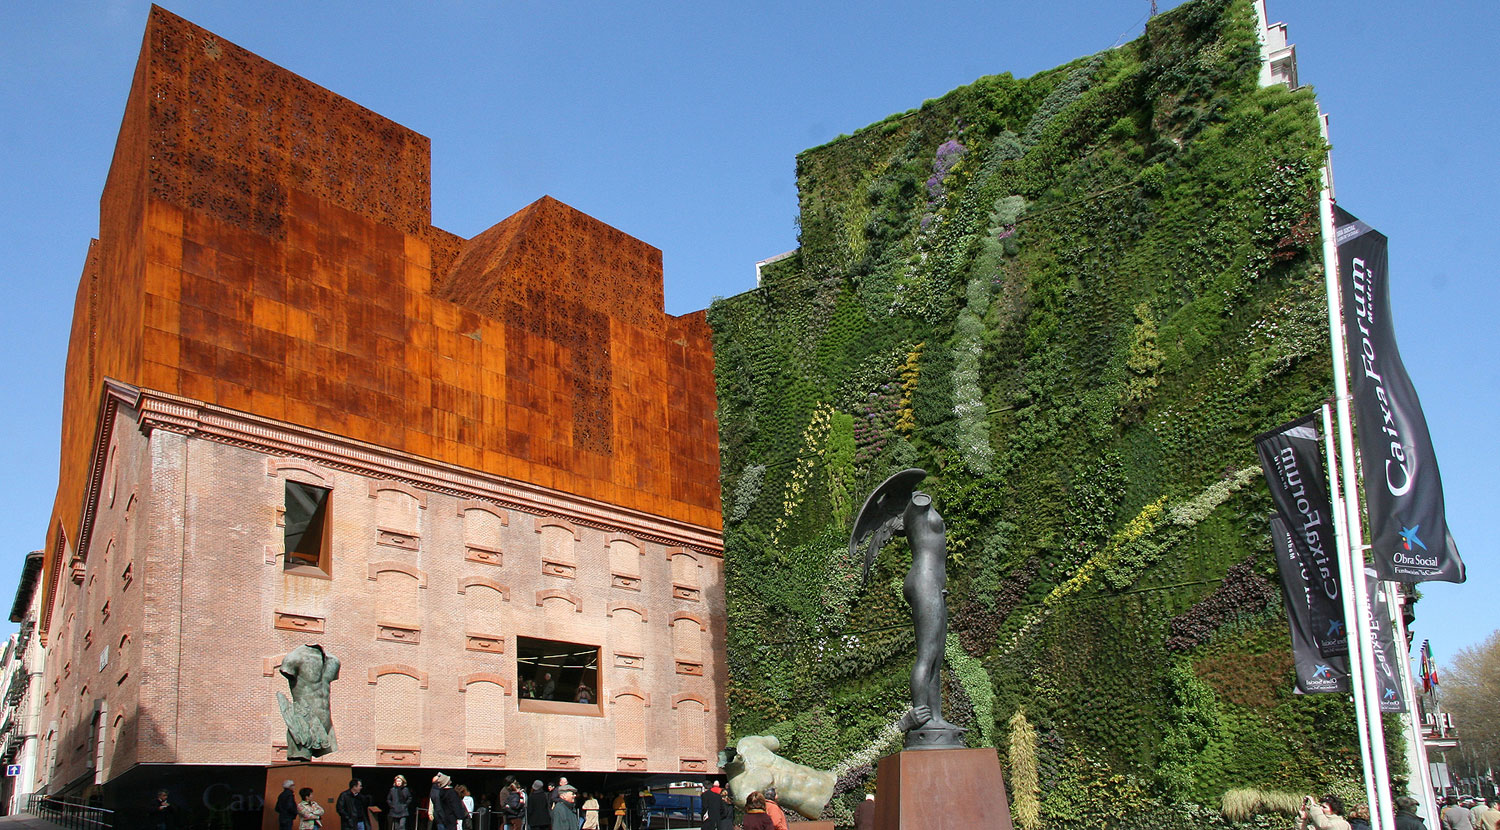 CaixaForum Cultural Center